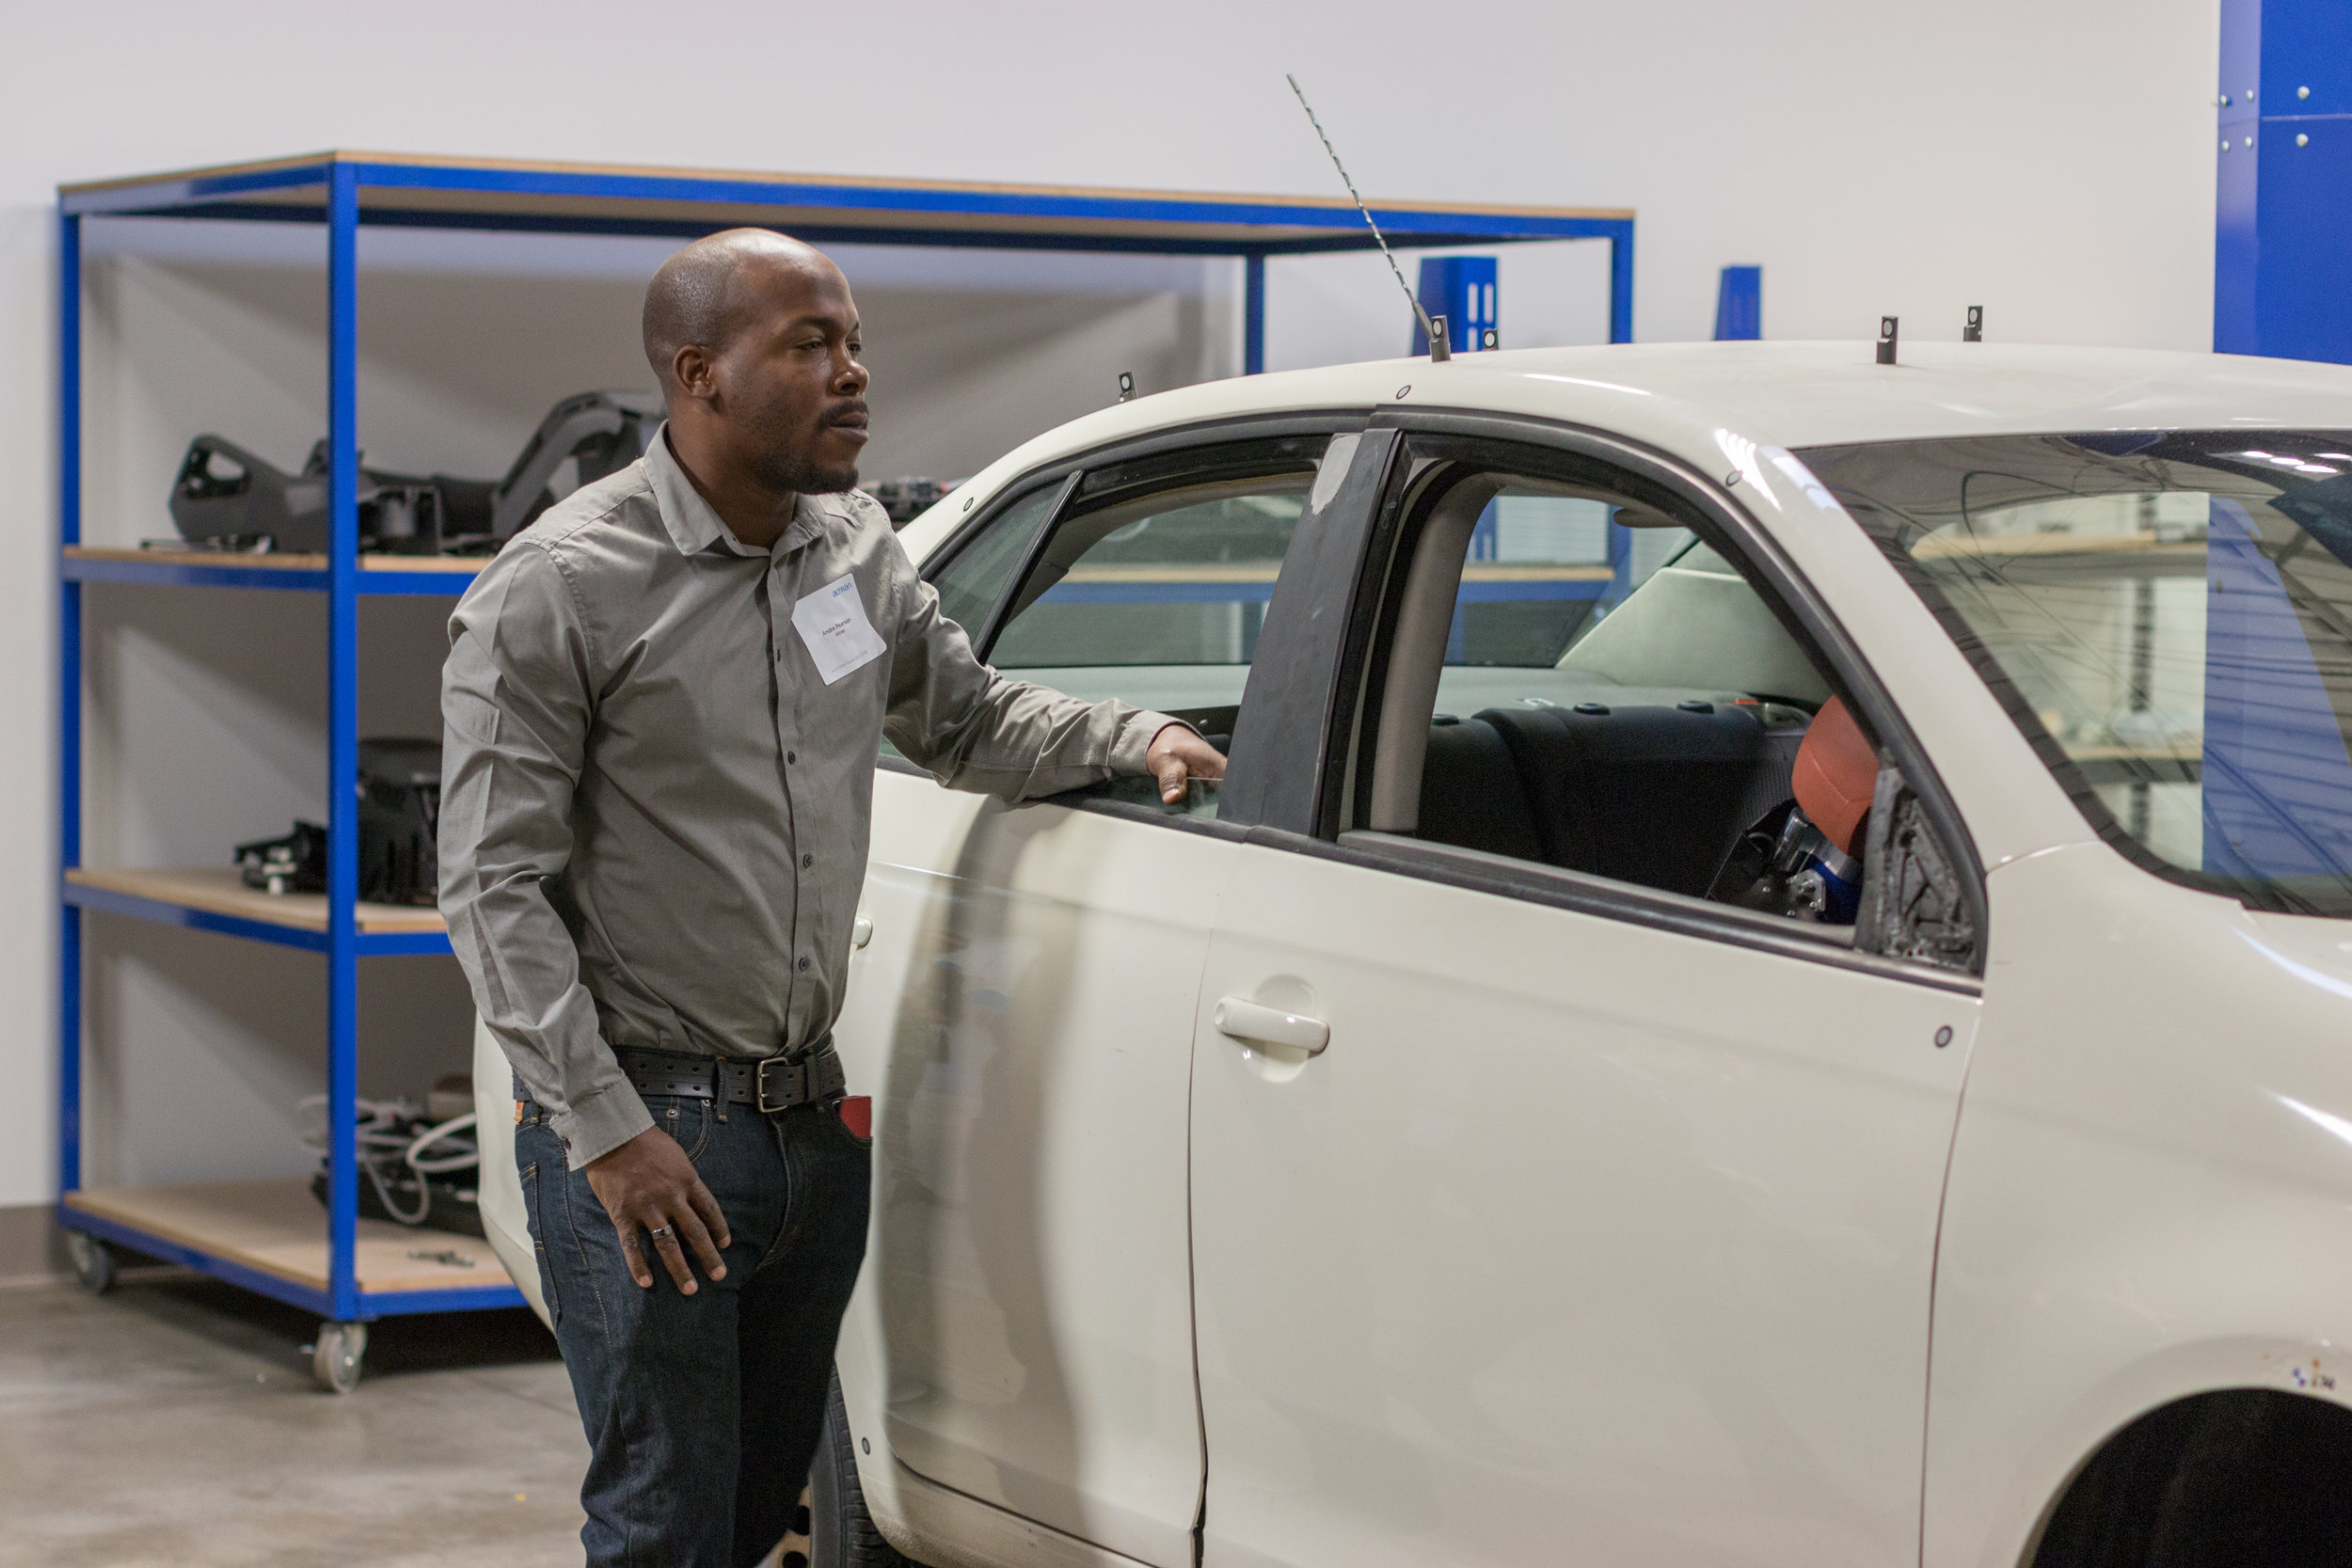 Altran Technologies SA, a French engineering and consulting firm, opened a passive-safety test center in Wixom, Mich.